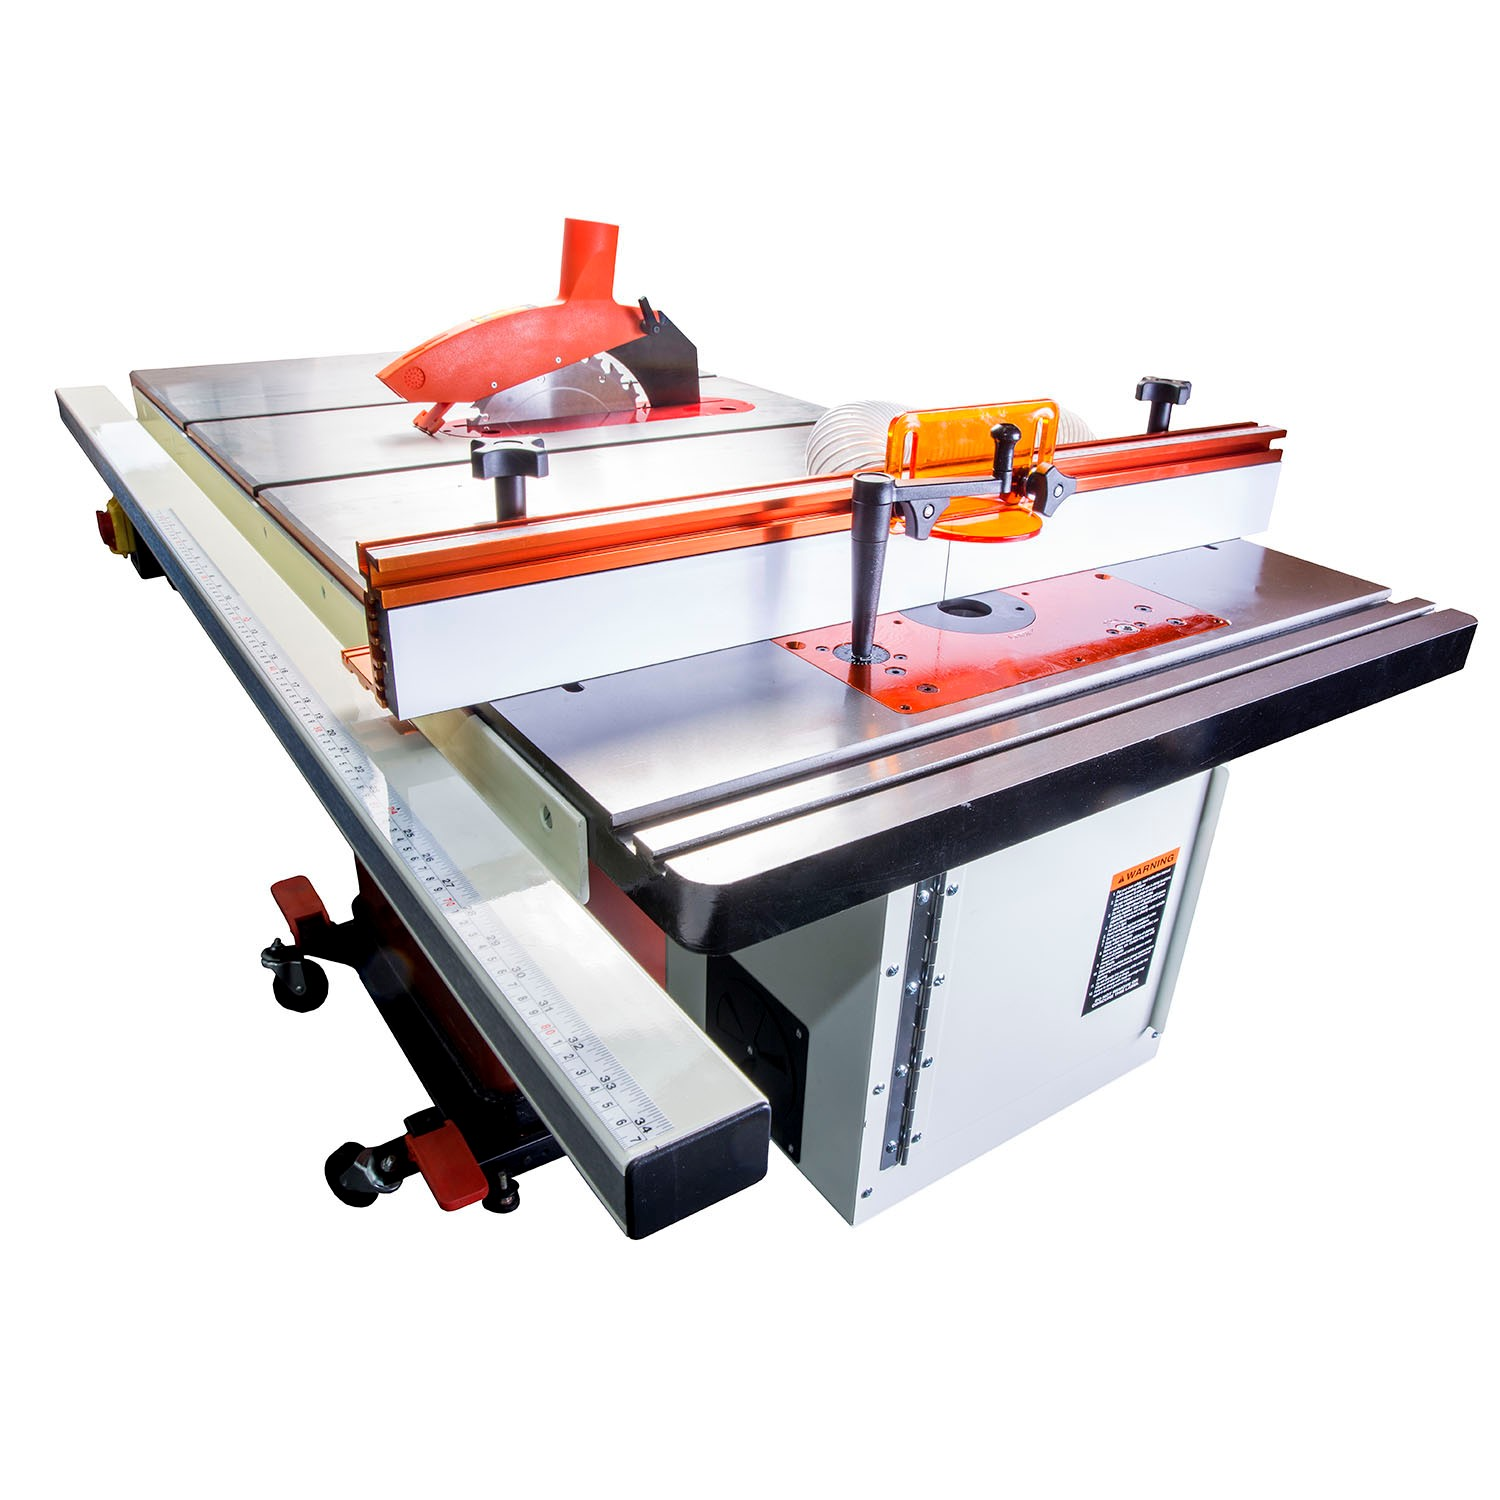 Router table kit 685 x 406mm table saw wing extension basic view larger photo greentooth Gallery